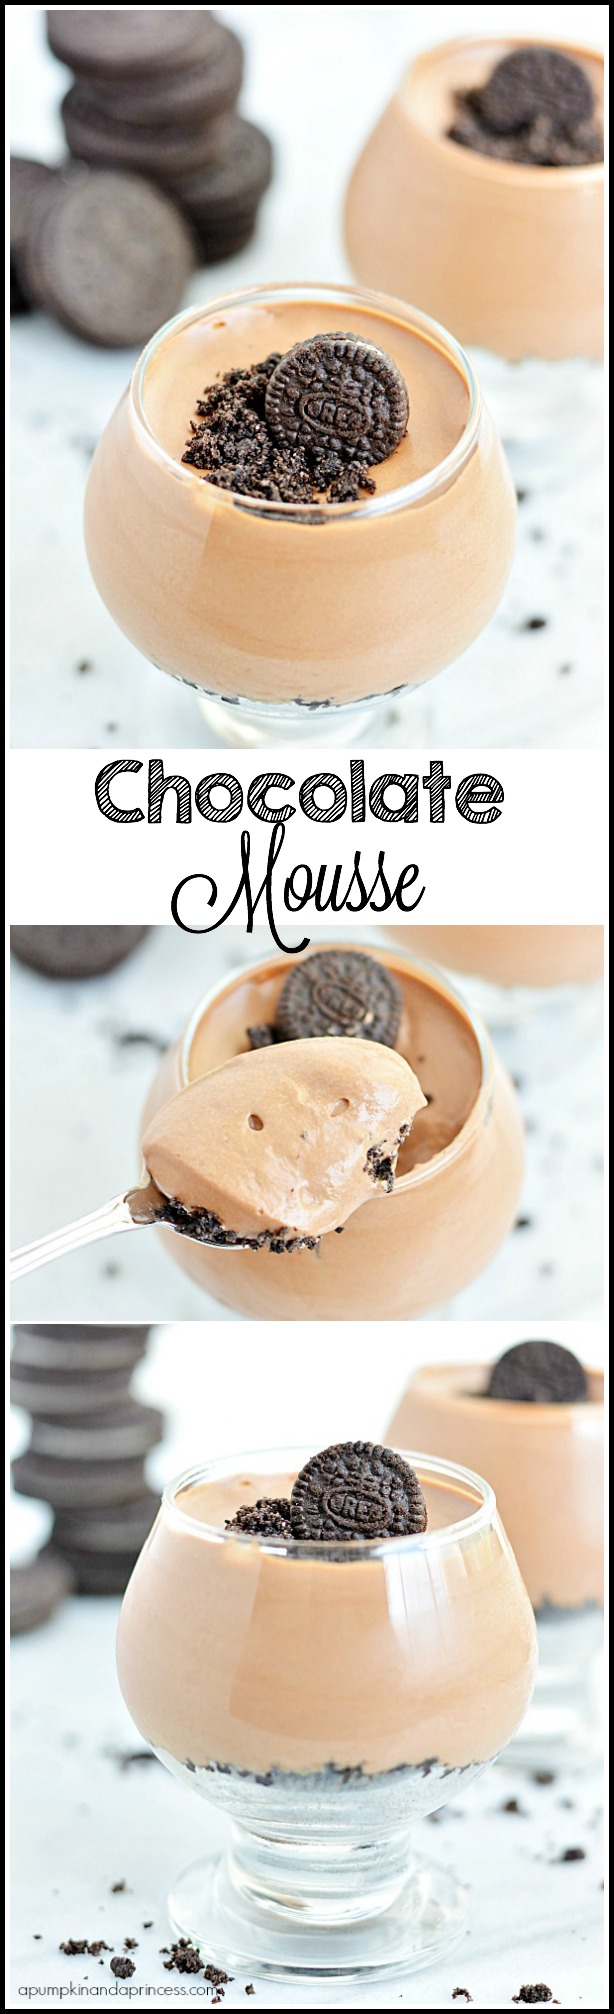 Oreo Crumb Chocolate Mousse